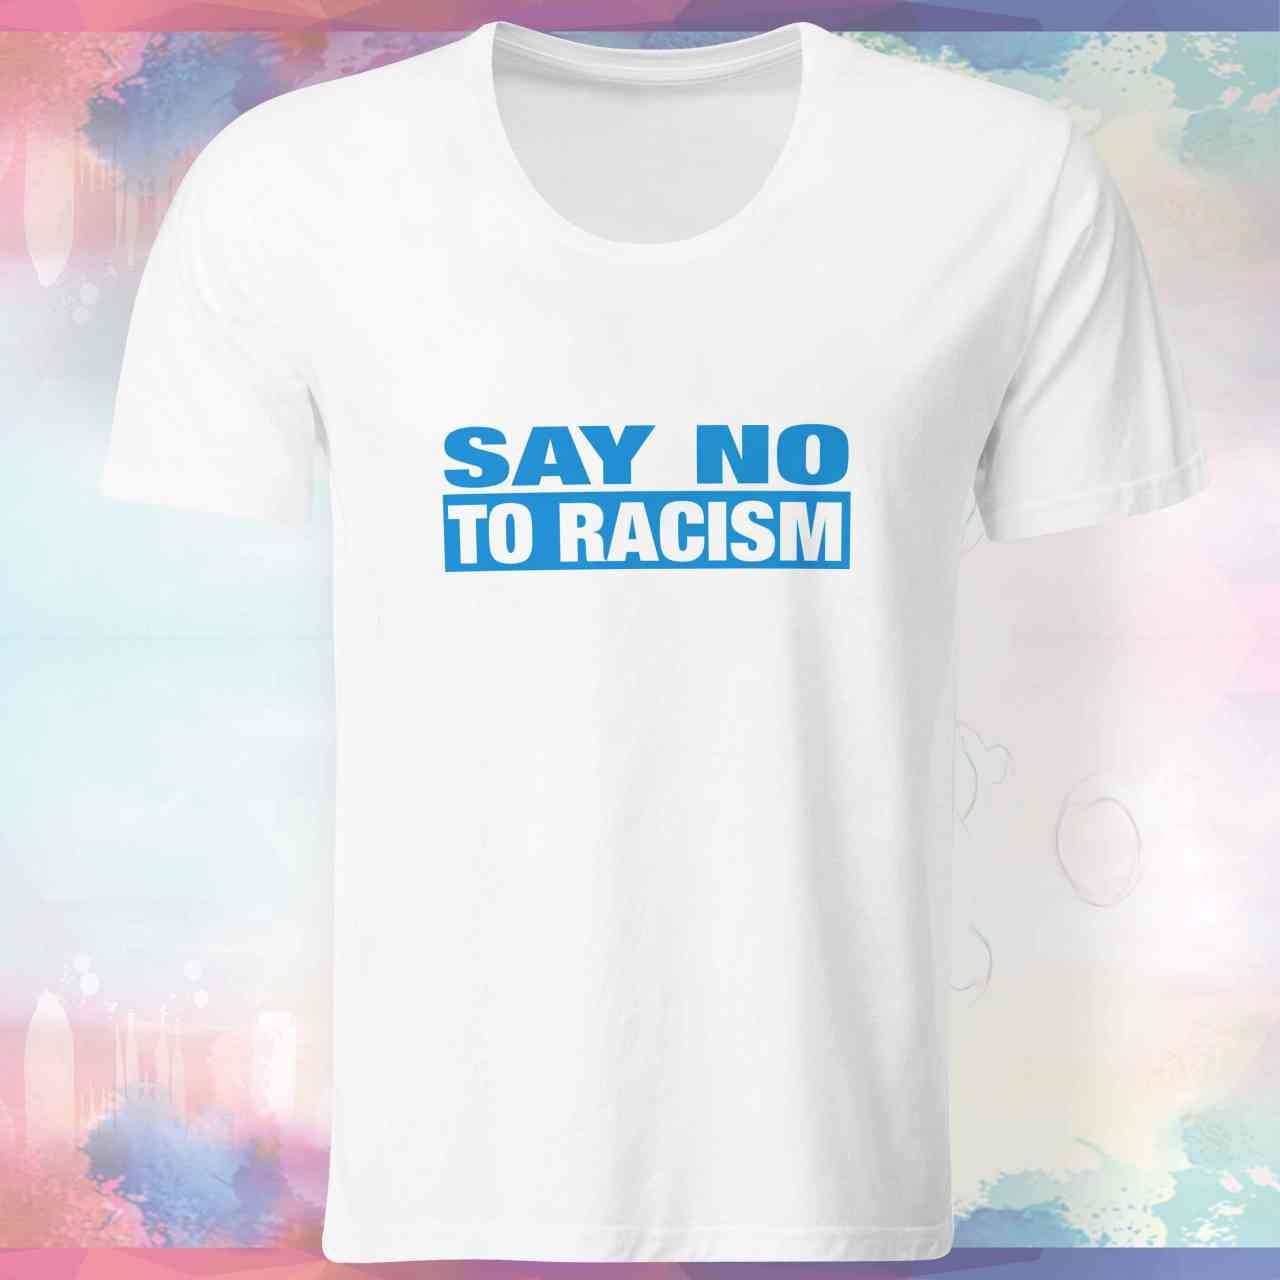 Say No to Racism Shirt | Nein zu Rassismus T-Shirt | #3 pickNstick